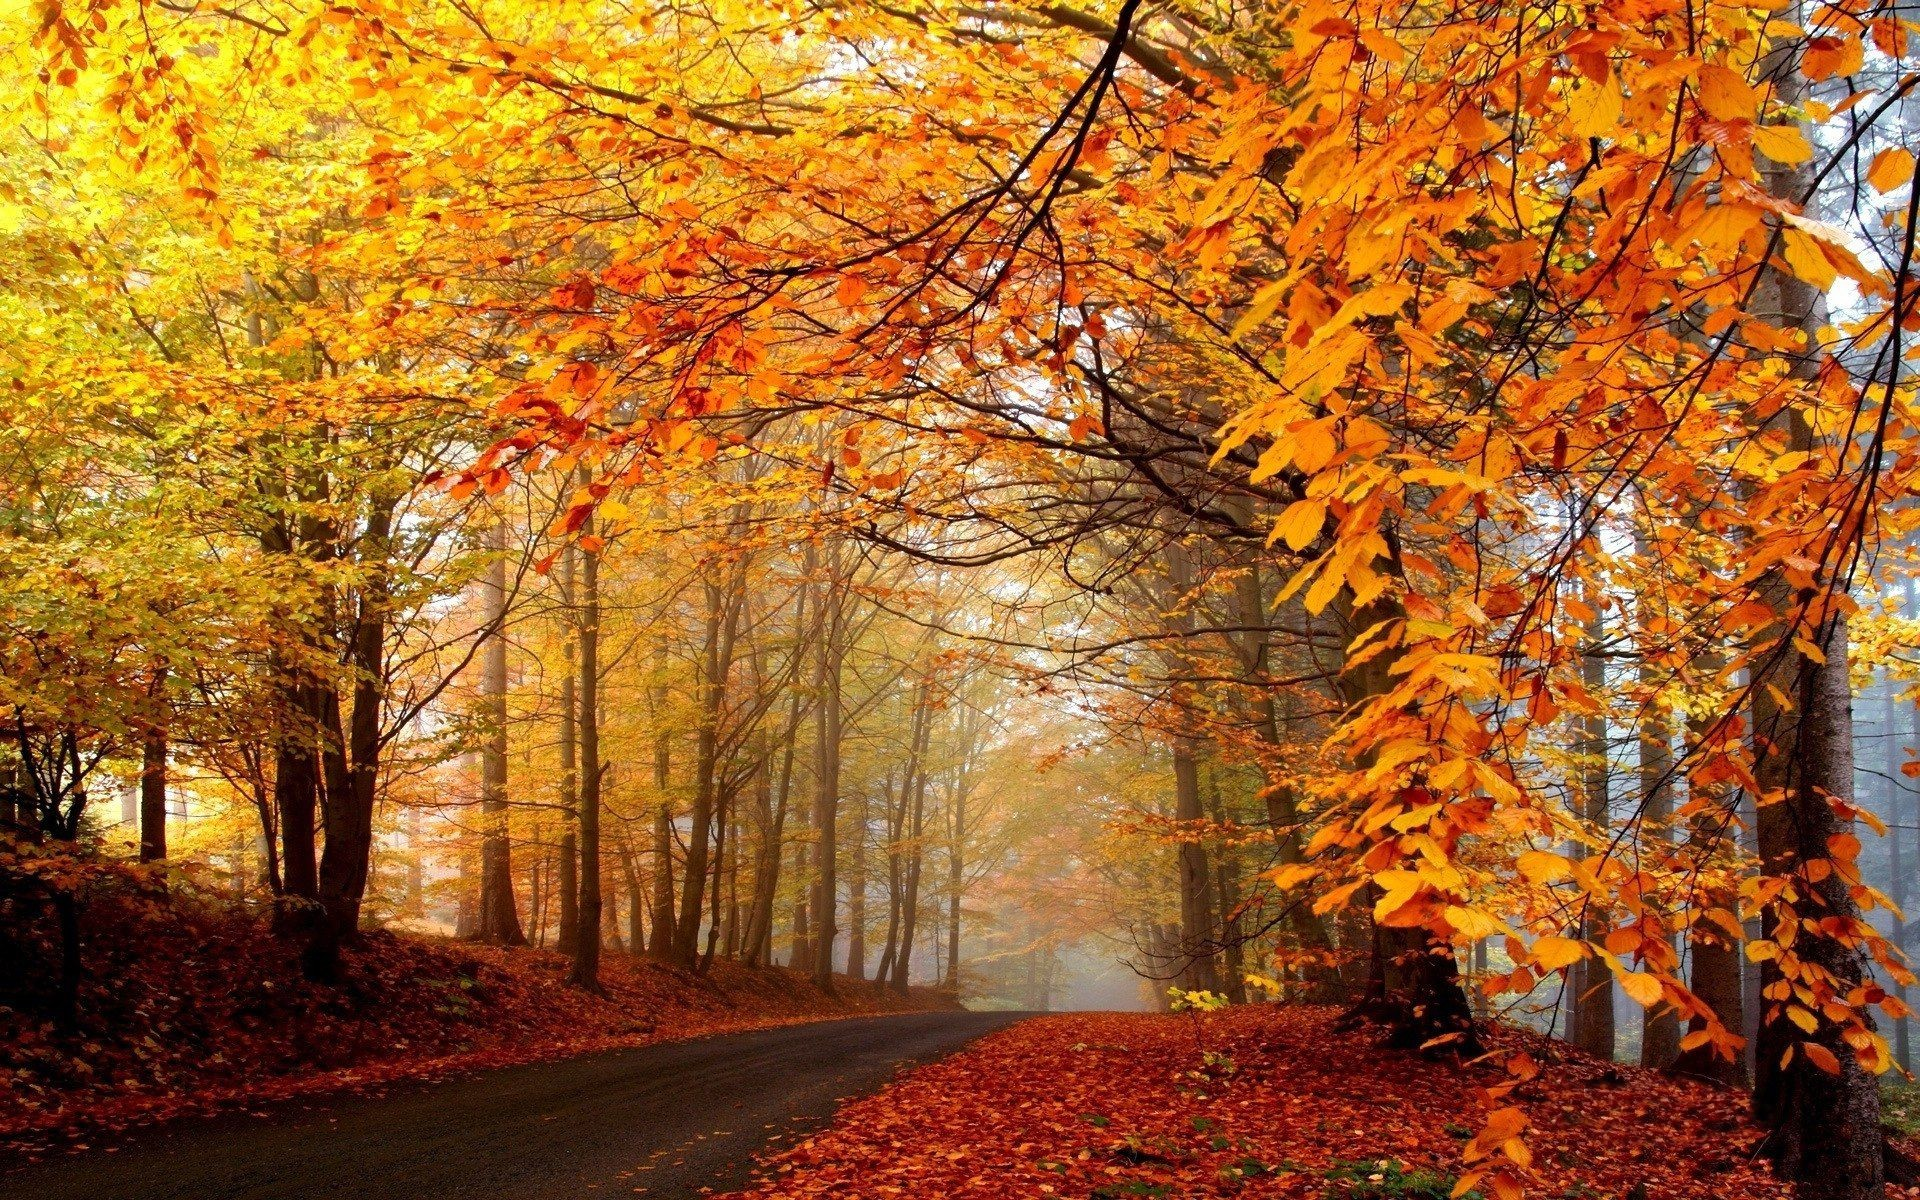 Autumn Scenery Wallpaper (57+ images)